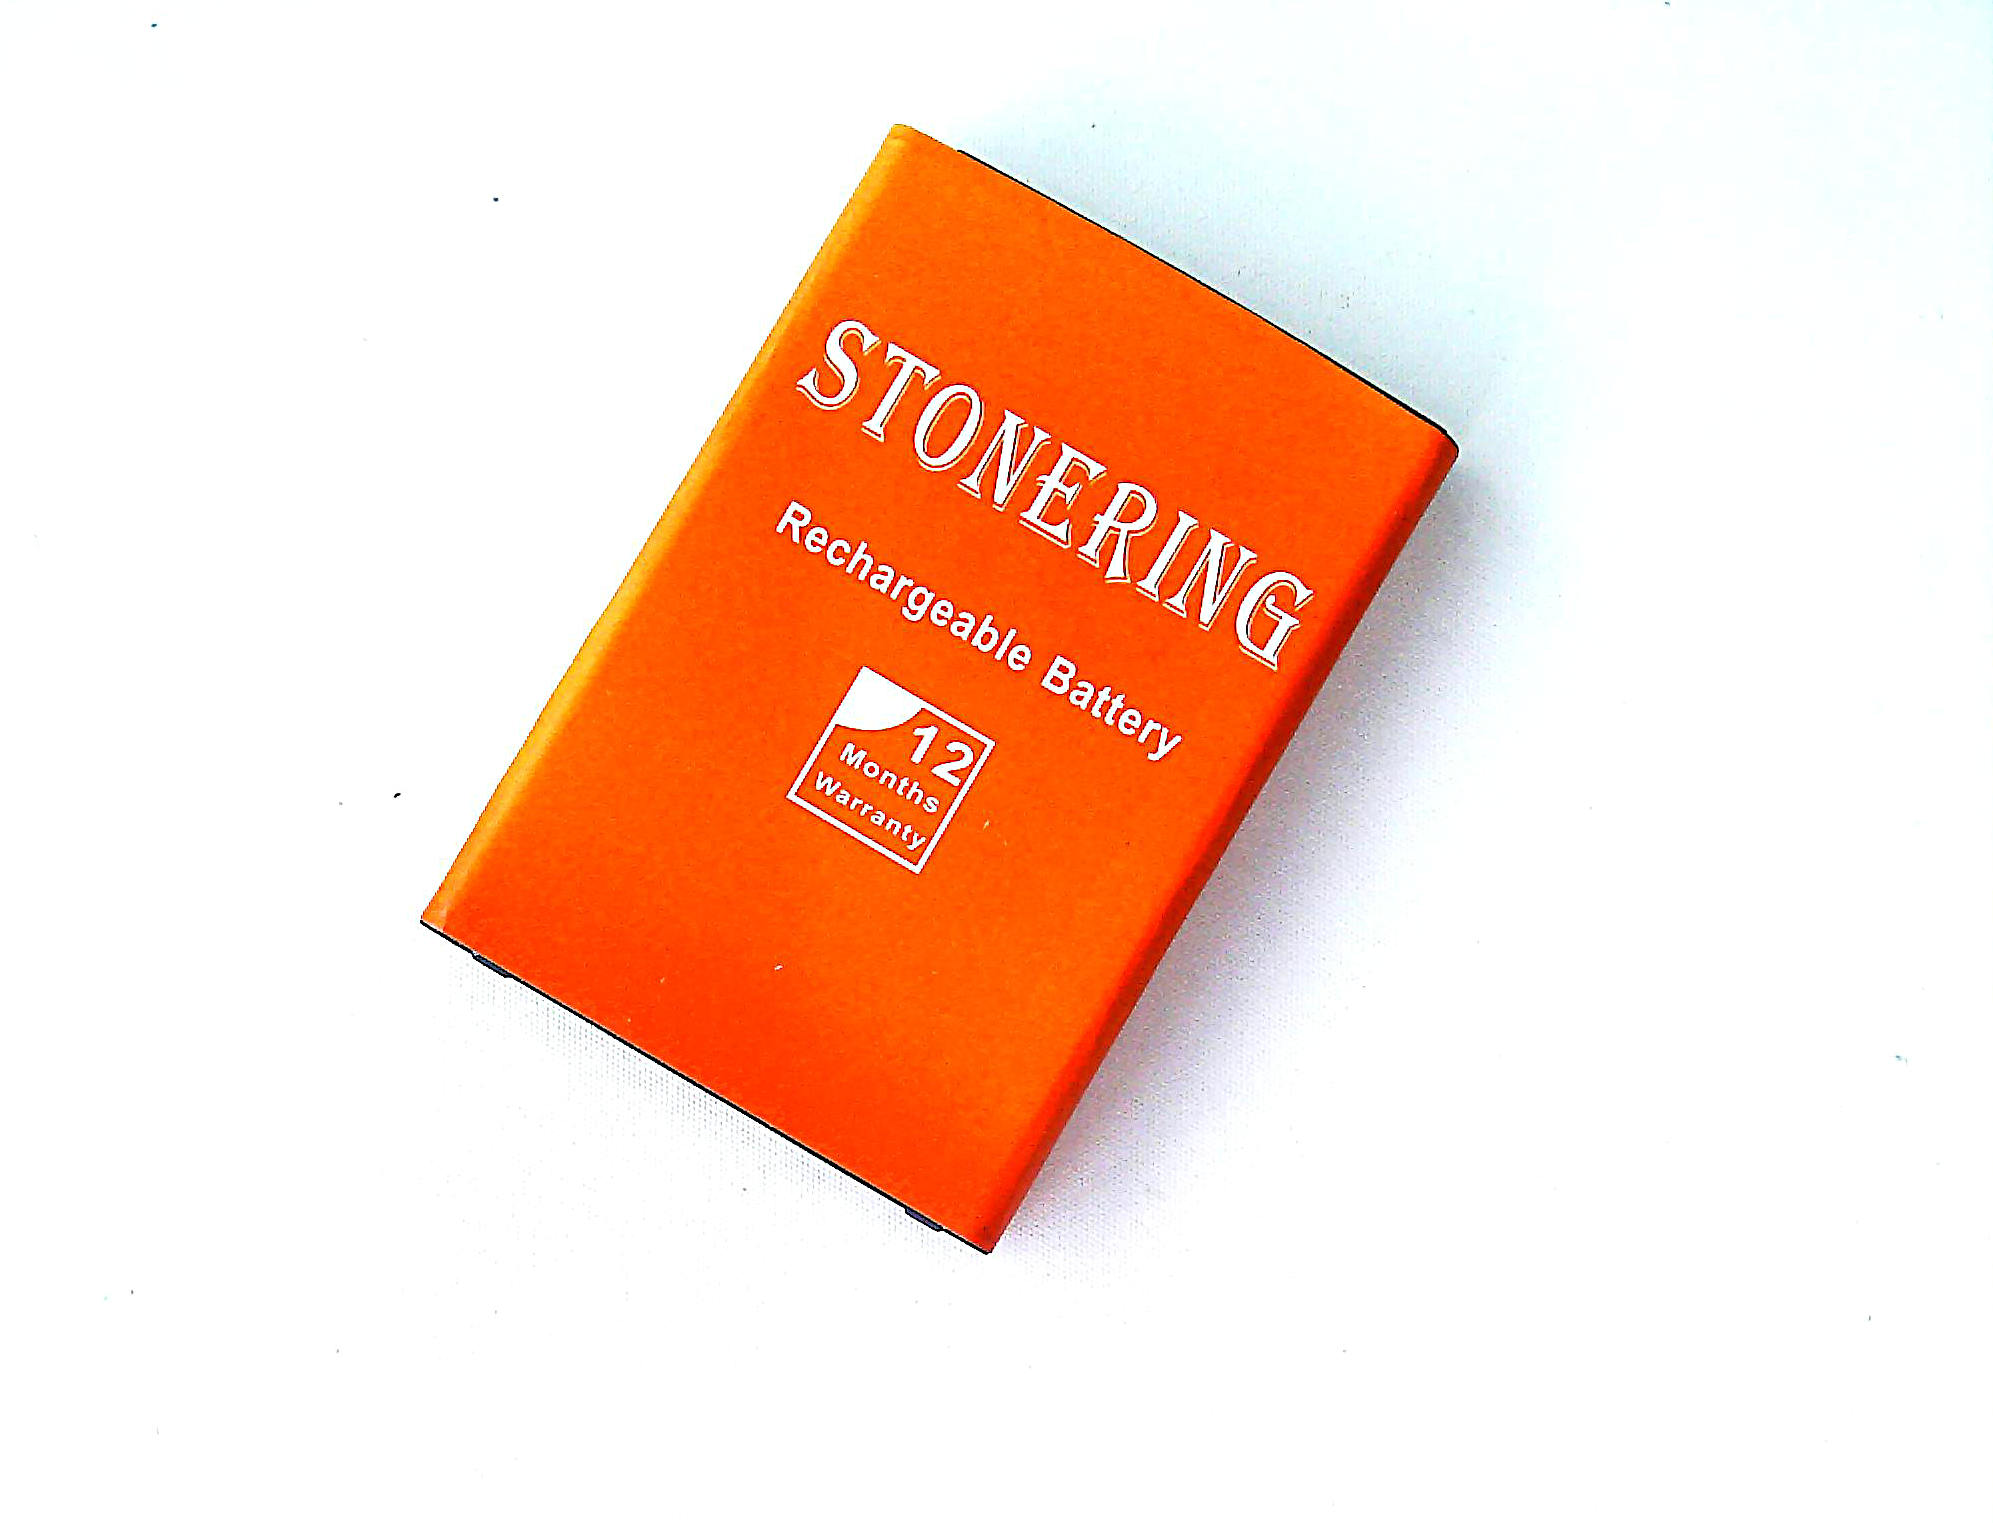 Stonering Battery 700mah AANN4204A For Motorola  BX200 C250 C350 C370 C650 V150 V180 V188 V220  Cellphone